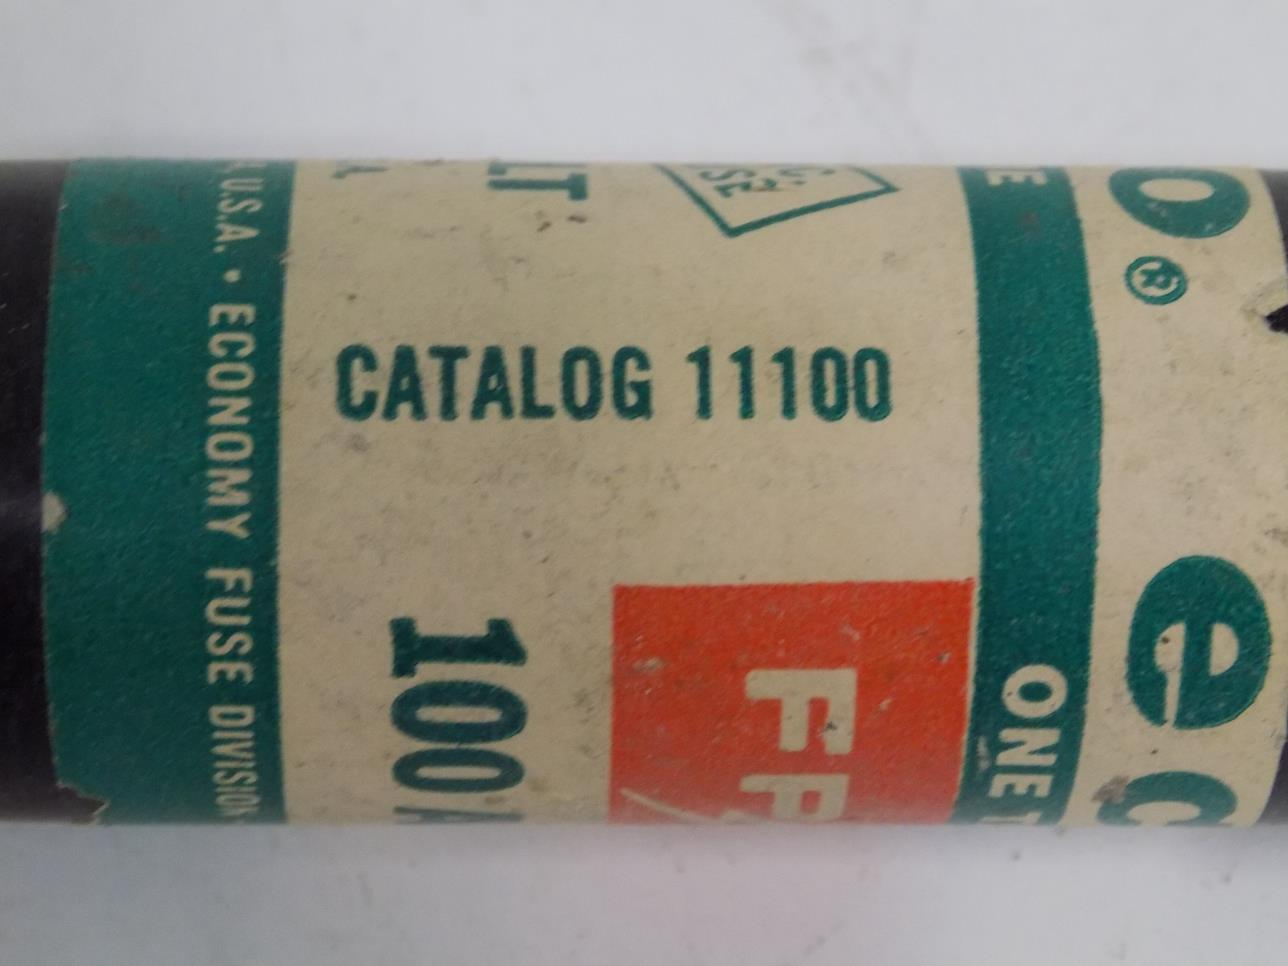 hight resolution of fpe one time 100amp fuse 11100 ls jch 12 20 2018 shelf 51 2263 1 jobcode unknown